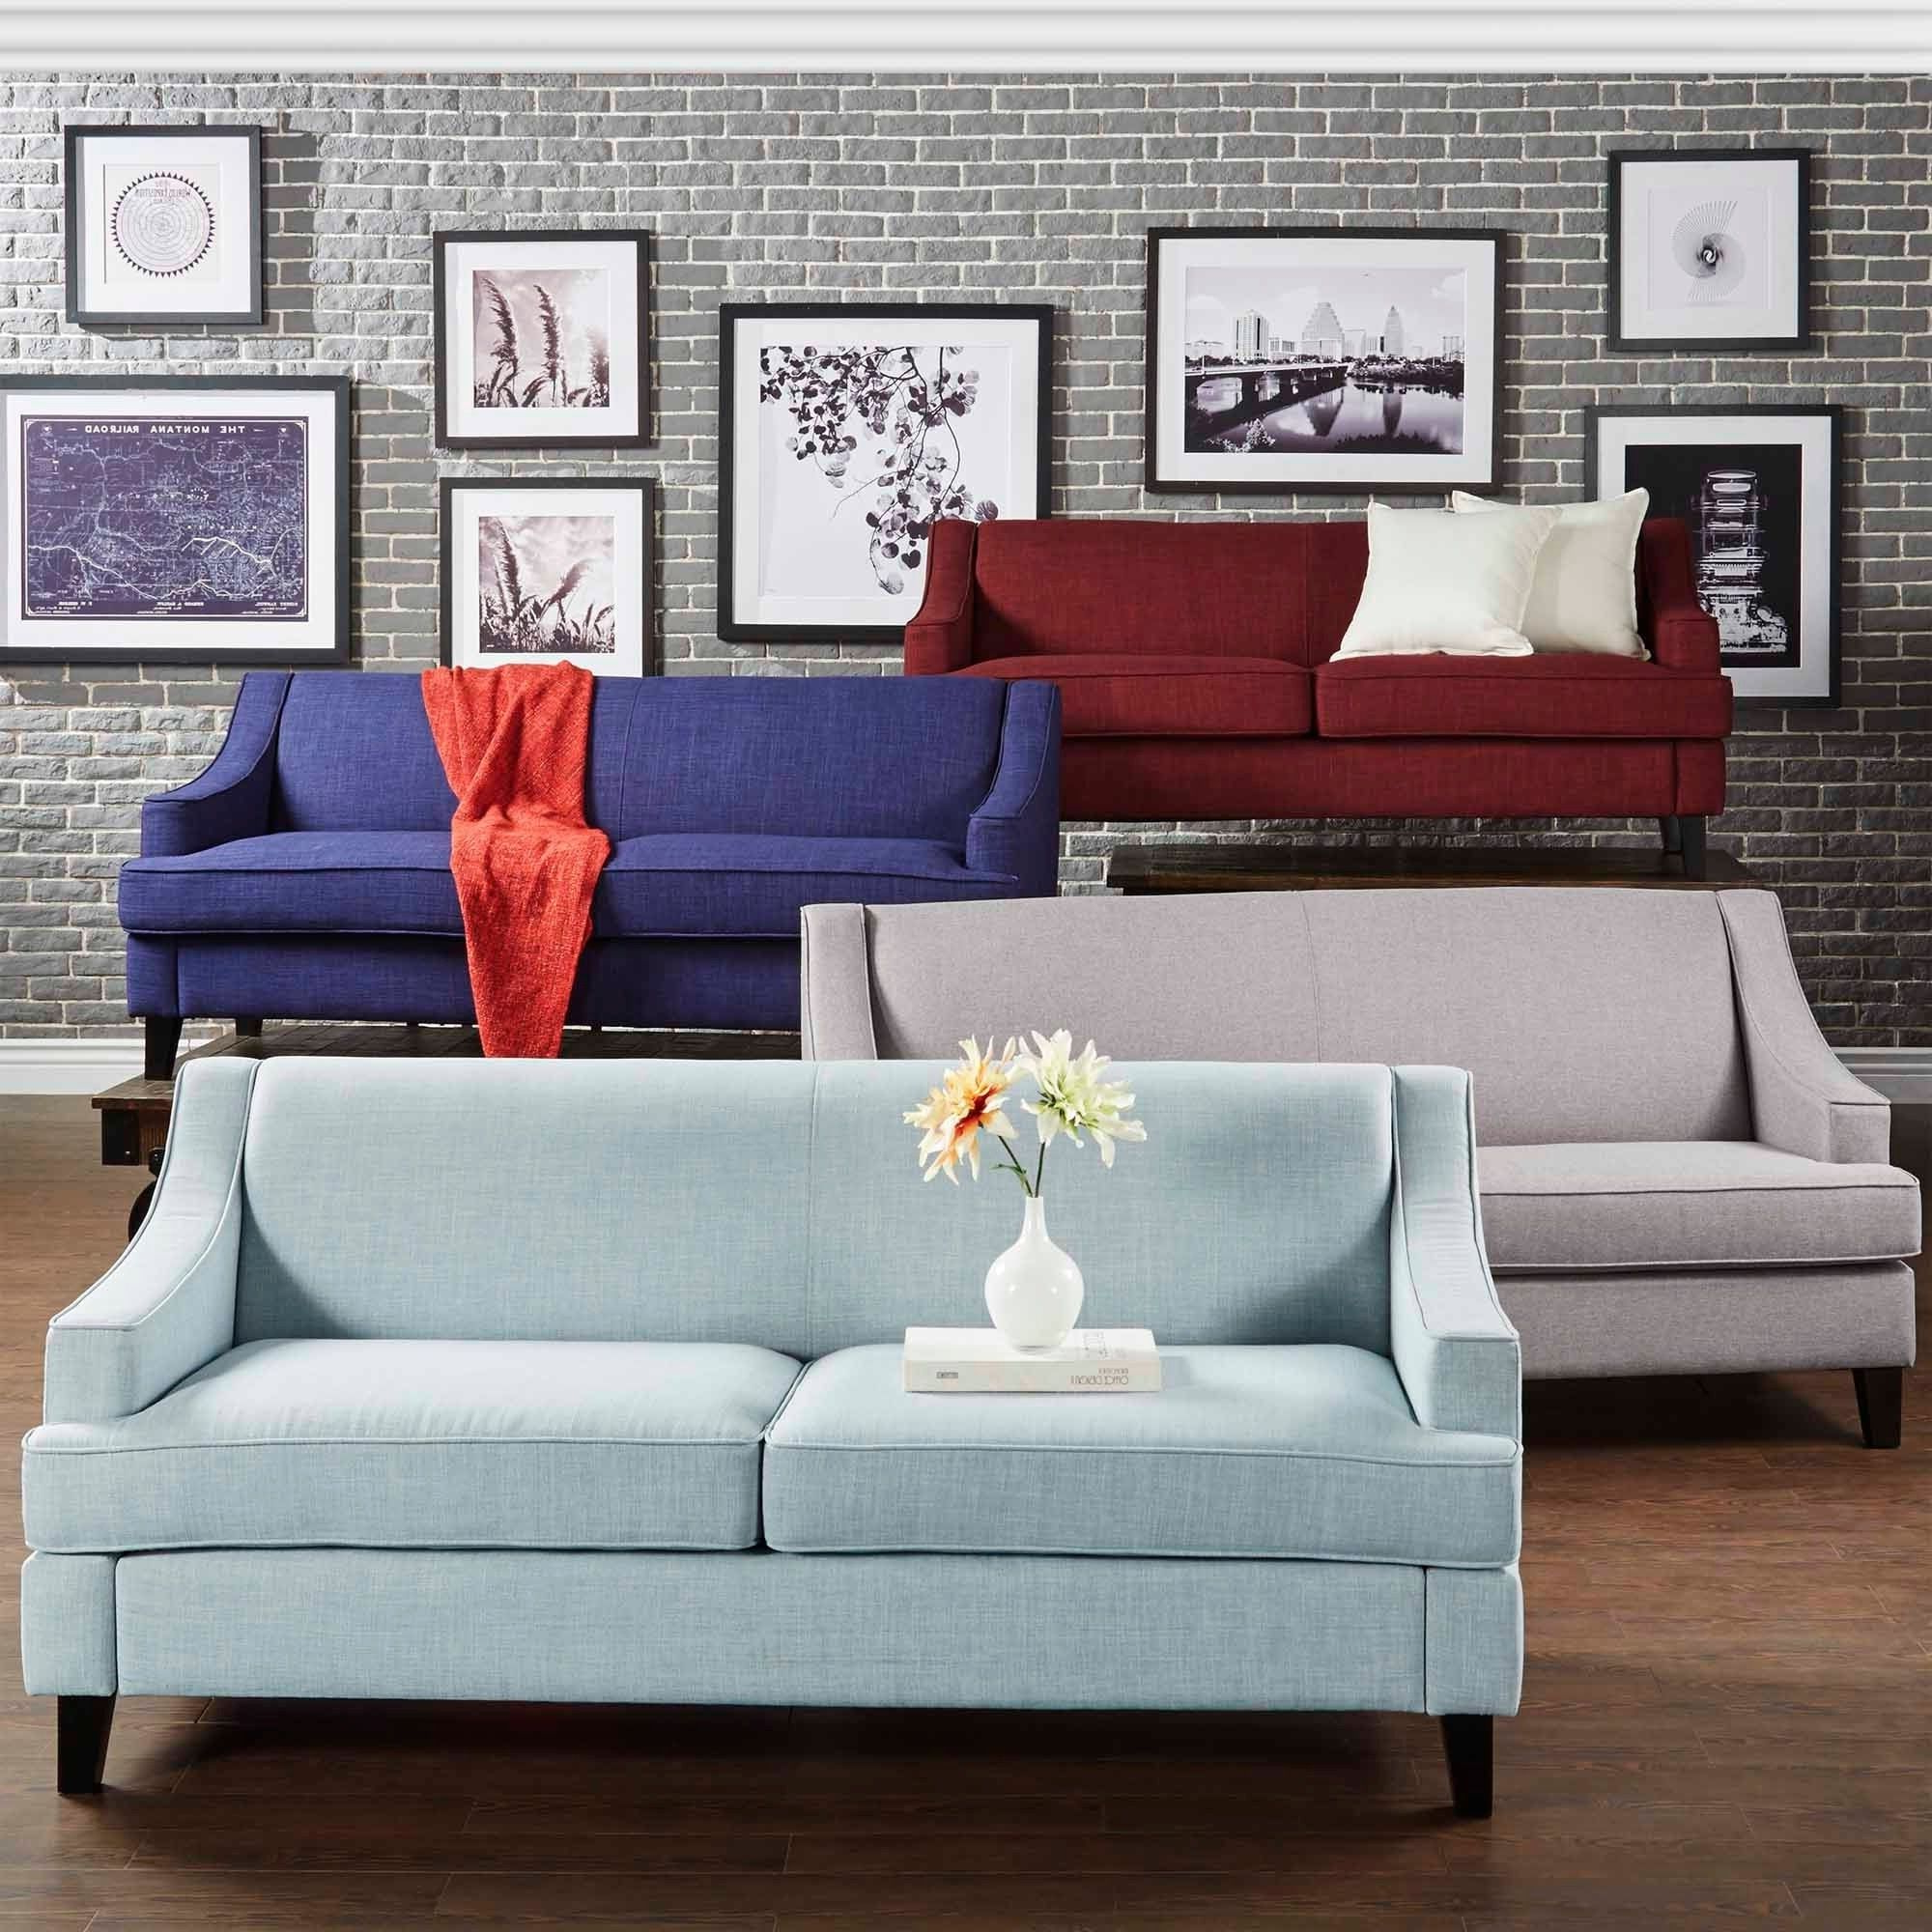 Outlet sofas Online E6d5 Shop Our Biggest Ever Memorial Day Sale sofas Marty Marj